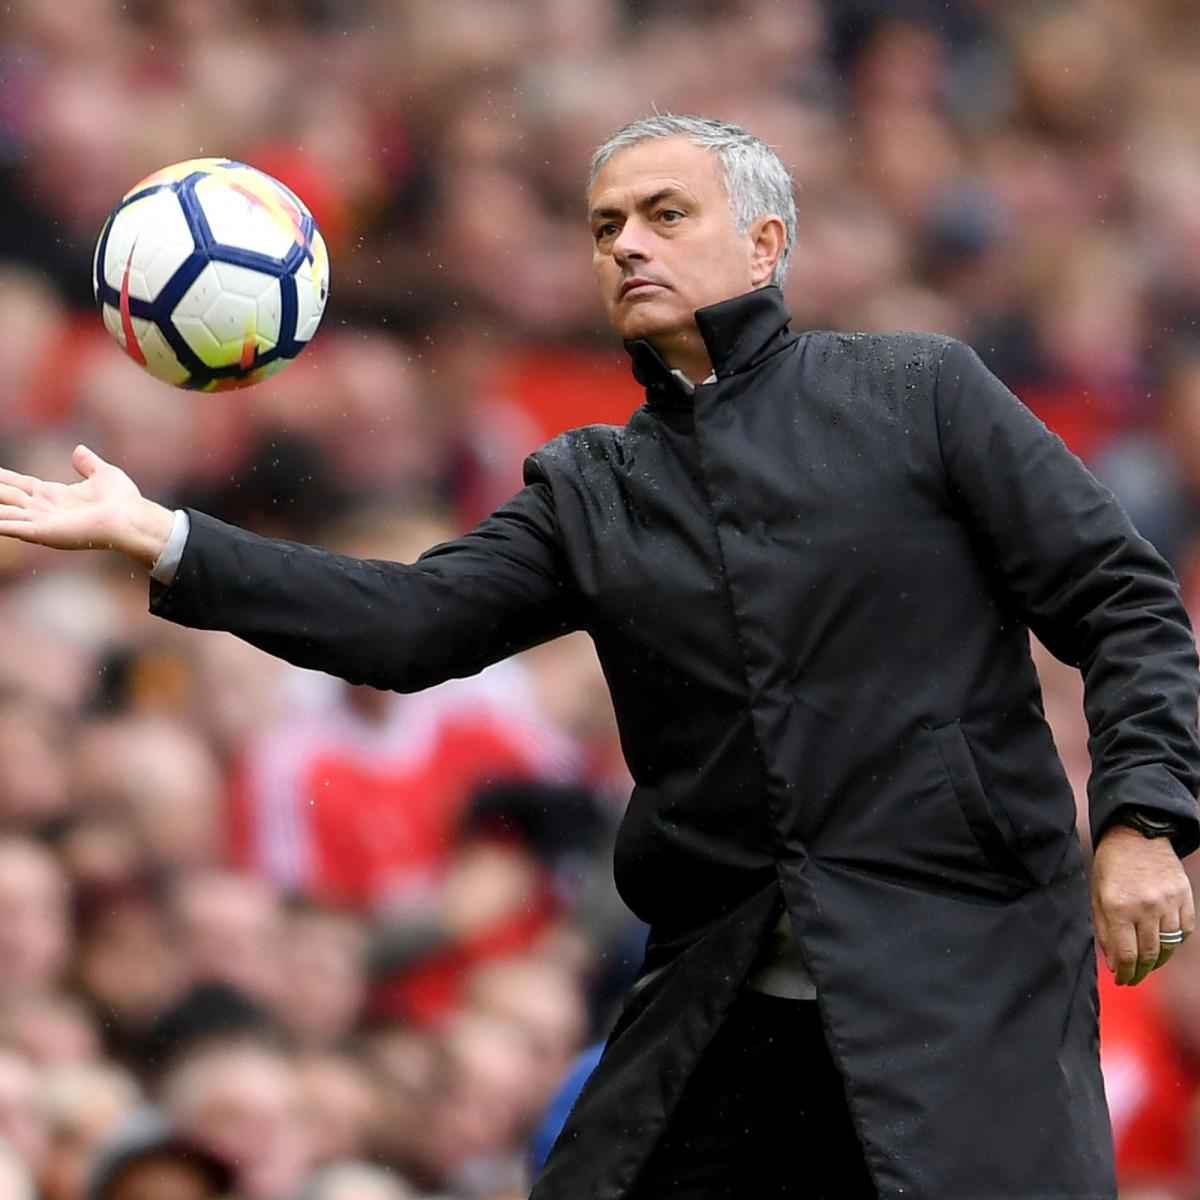 Jose Mourinho 'Ready to Sign' New Manchester United Deal Worth £65M